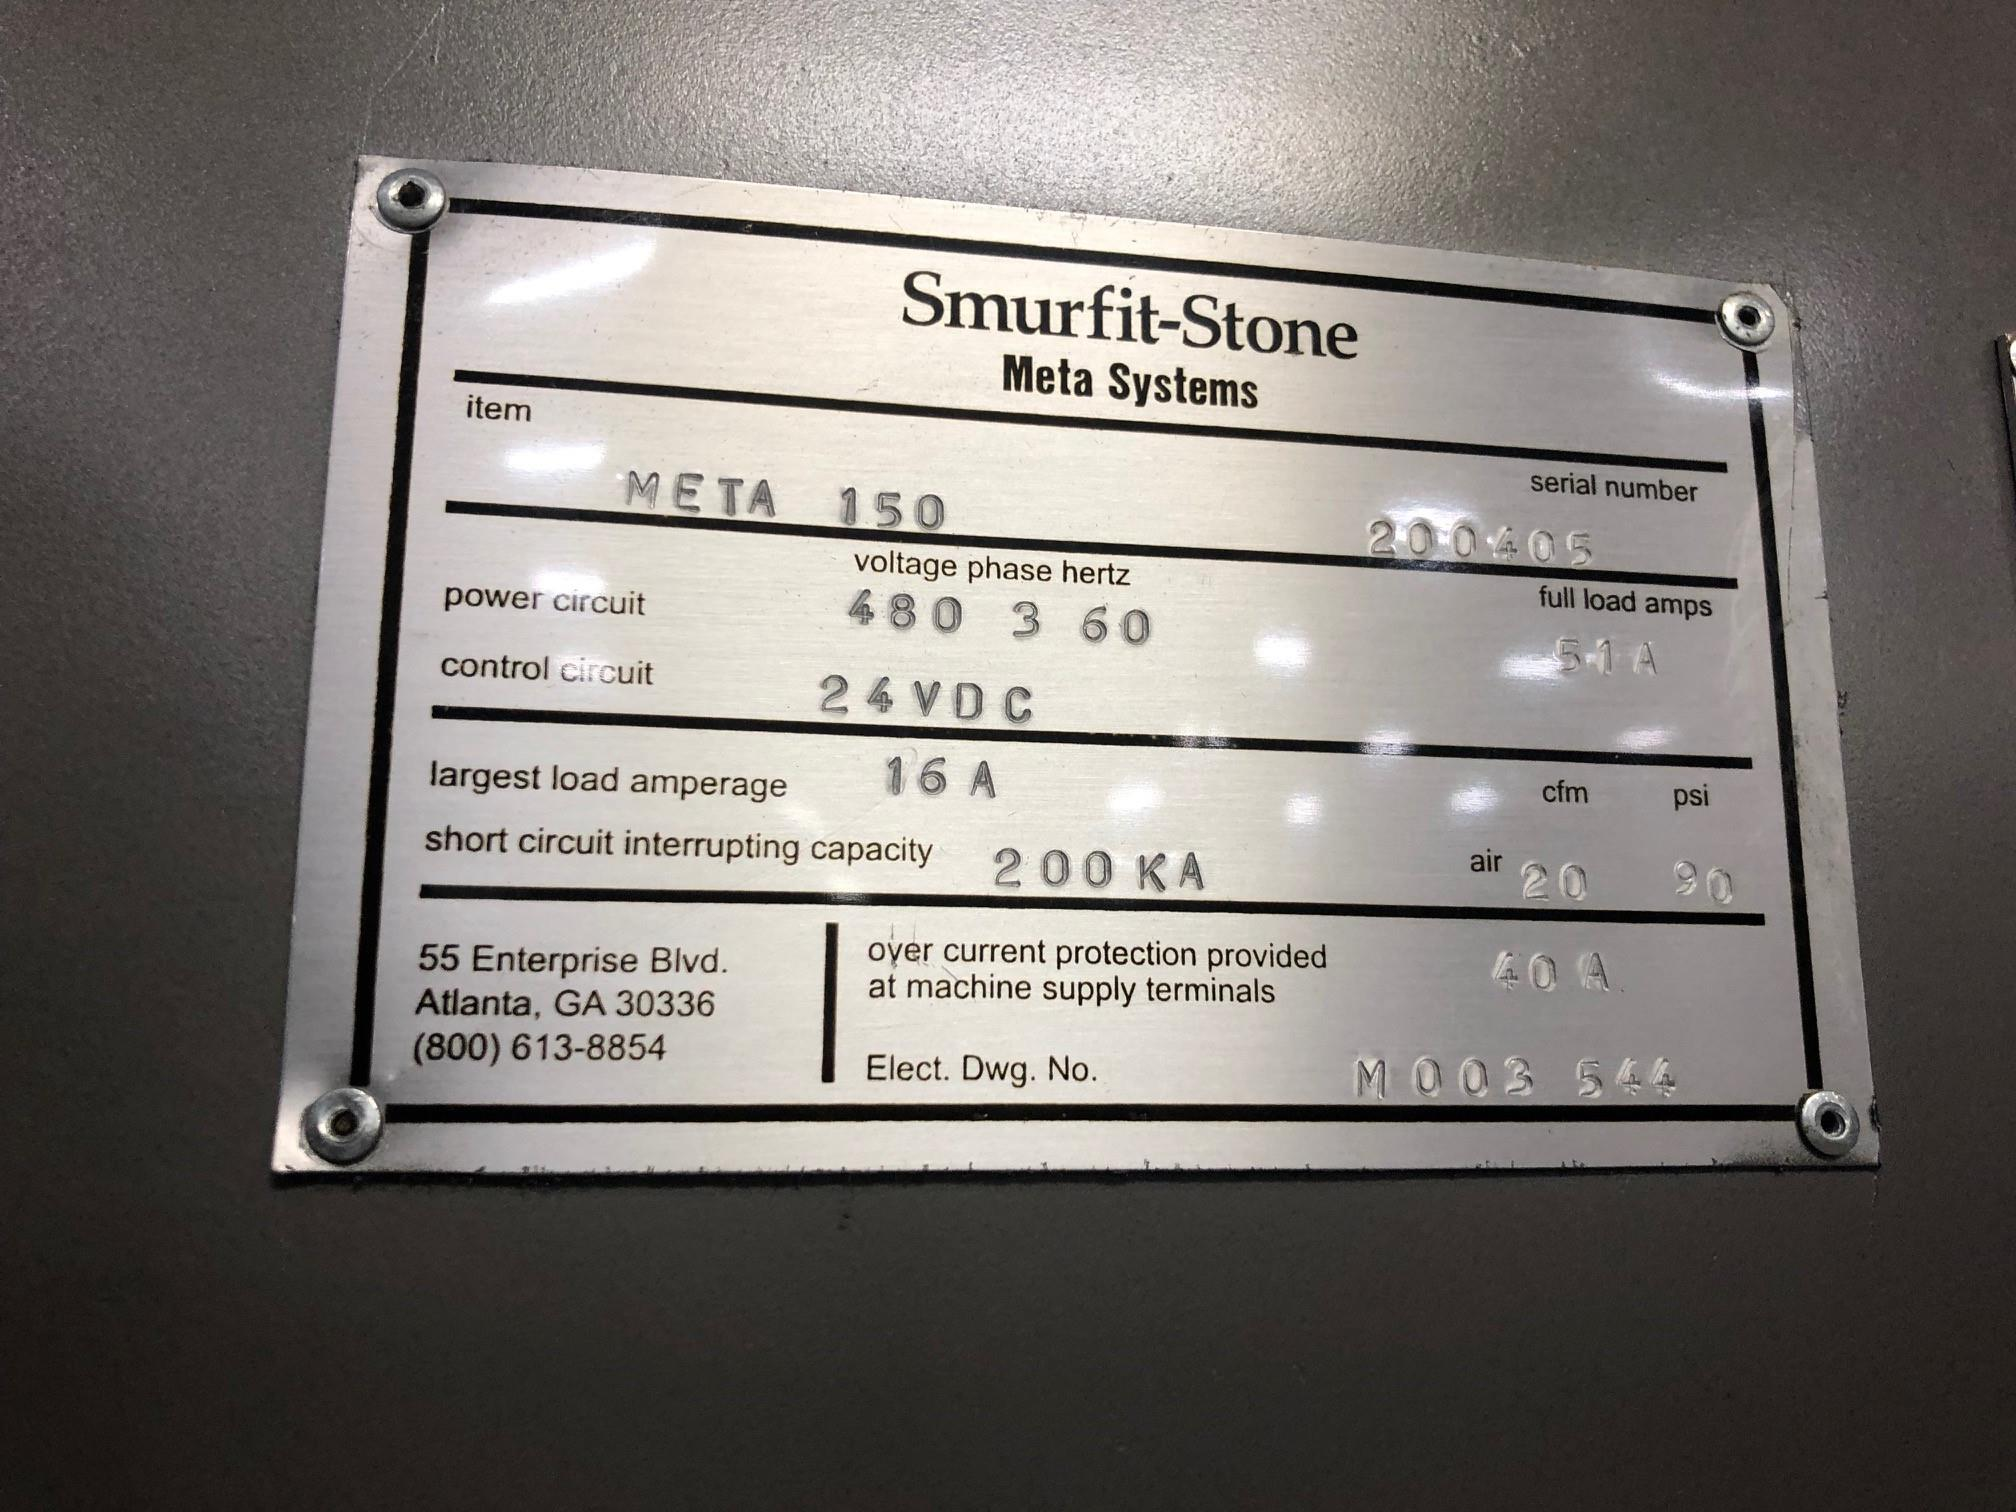 Smurfit-Stone Meta Systems Case Former, Model Meta 150, S/N 200405 Rigging Fee: $250 - Image 3 of 3